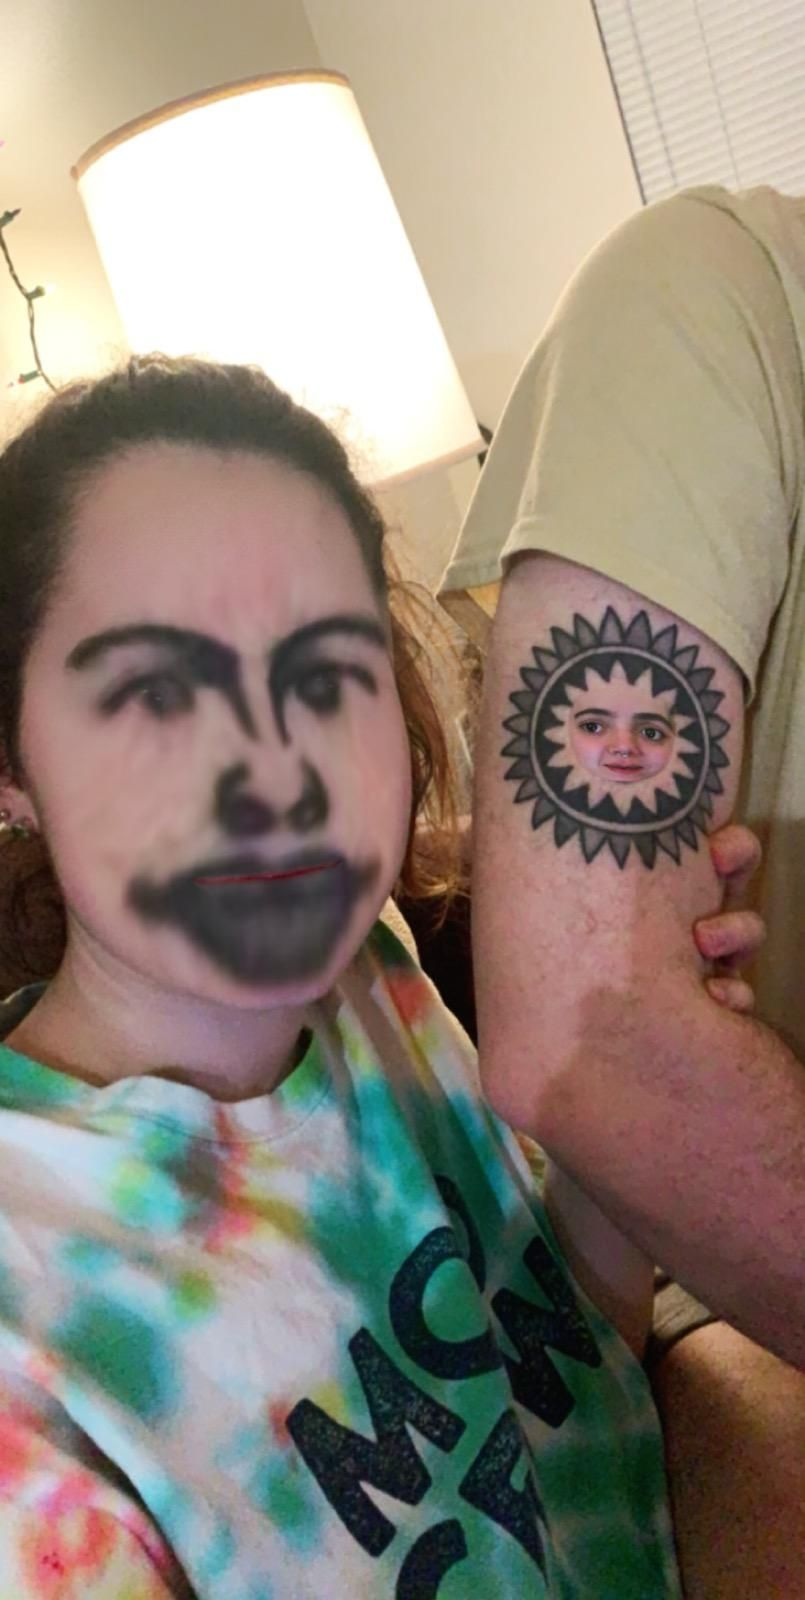 Face-swapping, with a tattoo